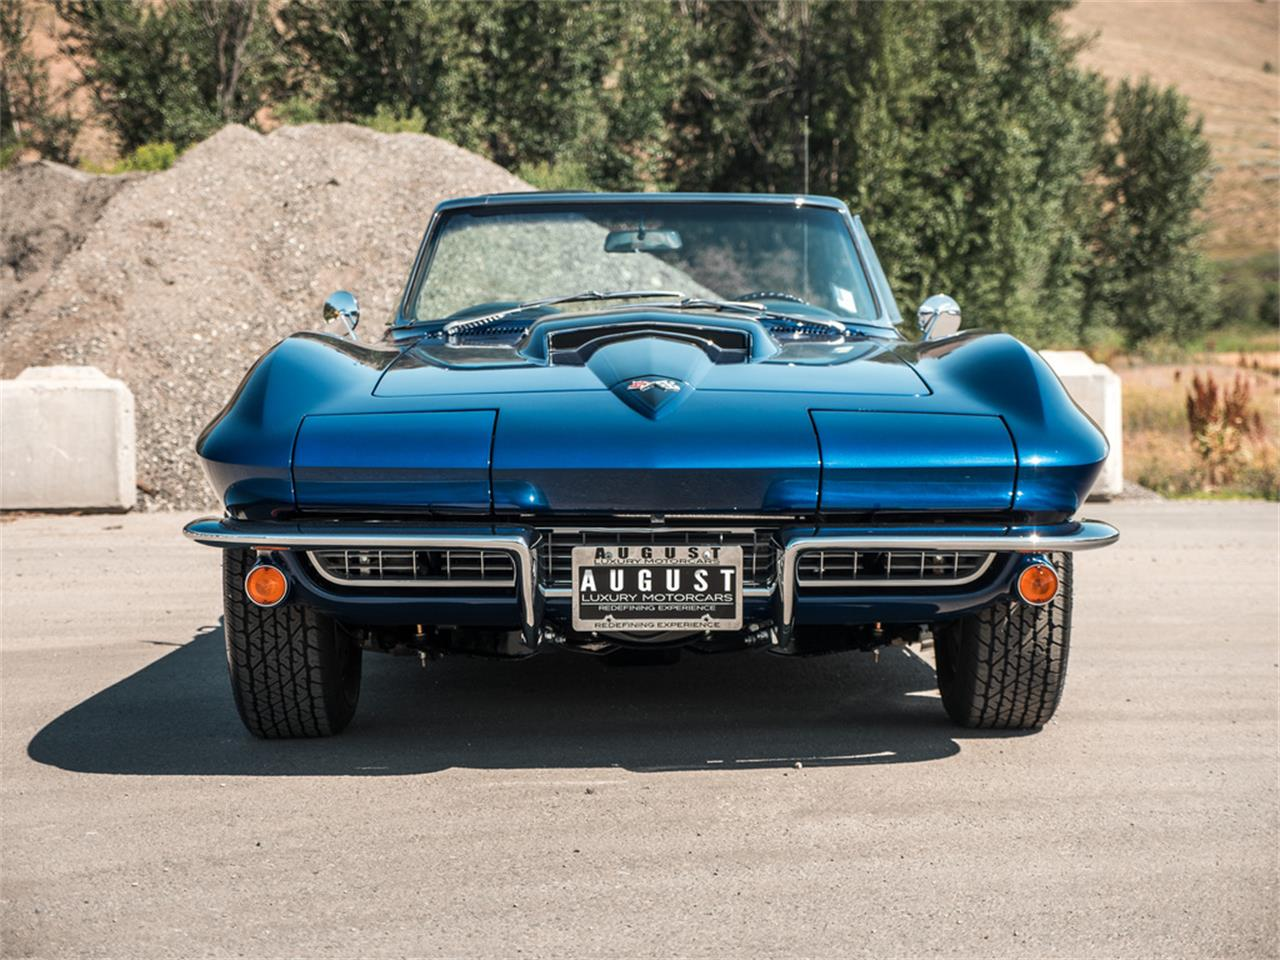 Large Picture of Classic '67 Corvette located in British Columbia - $107,123.00 Offered by August Motorcars - QH6N